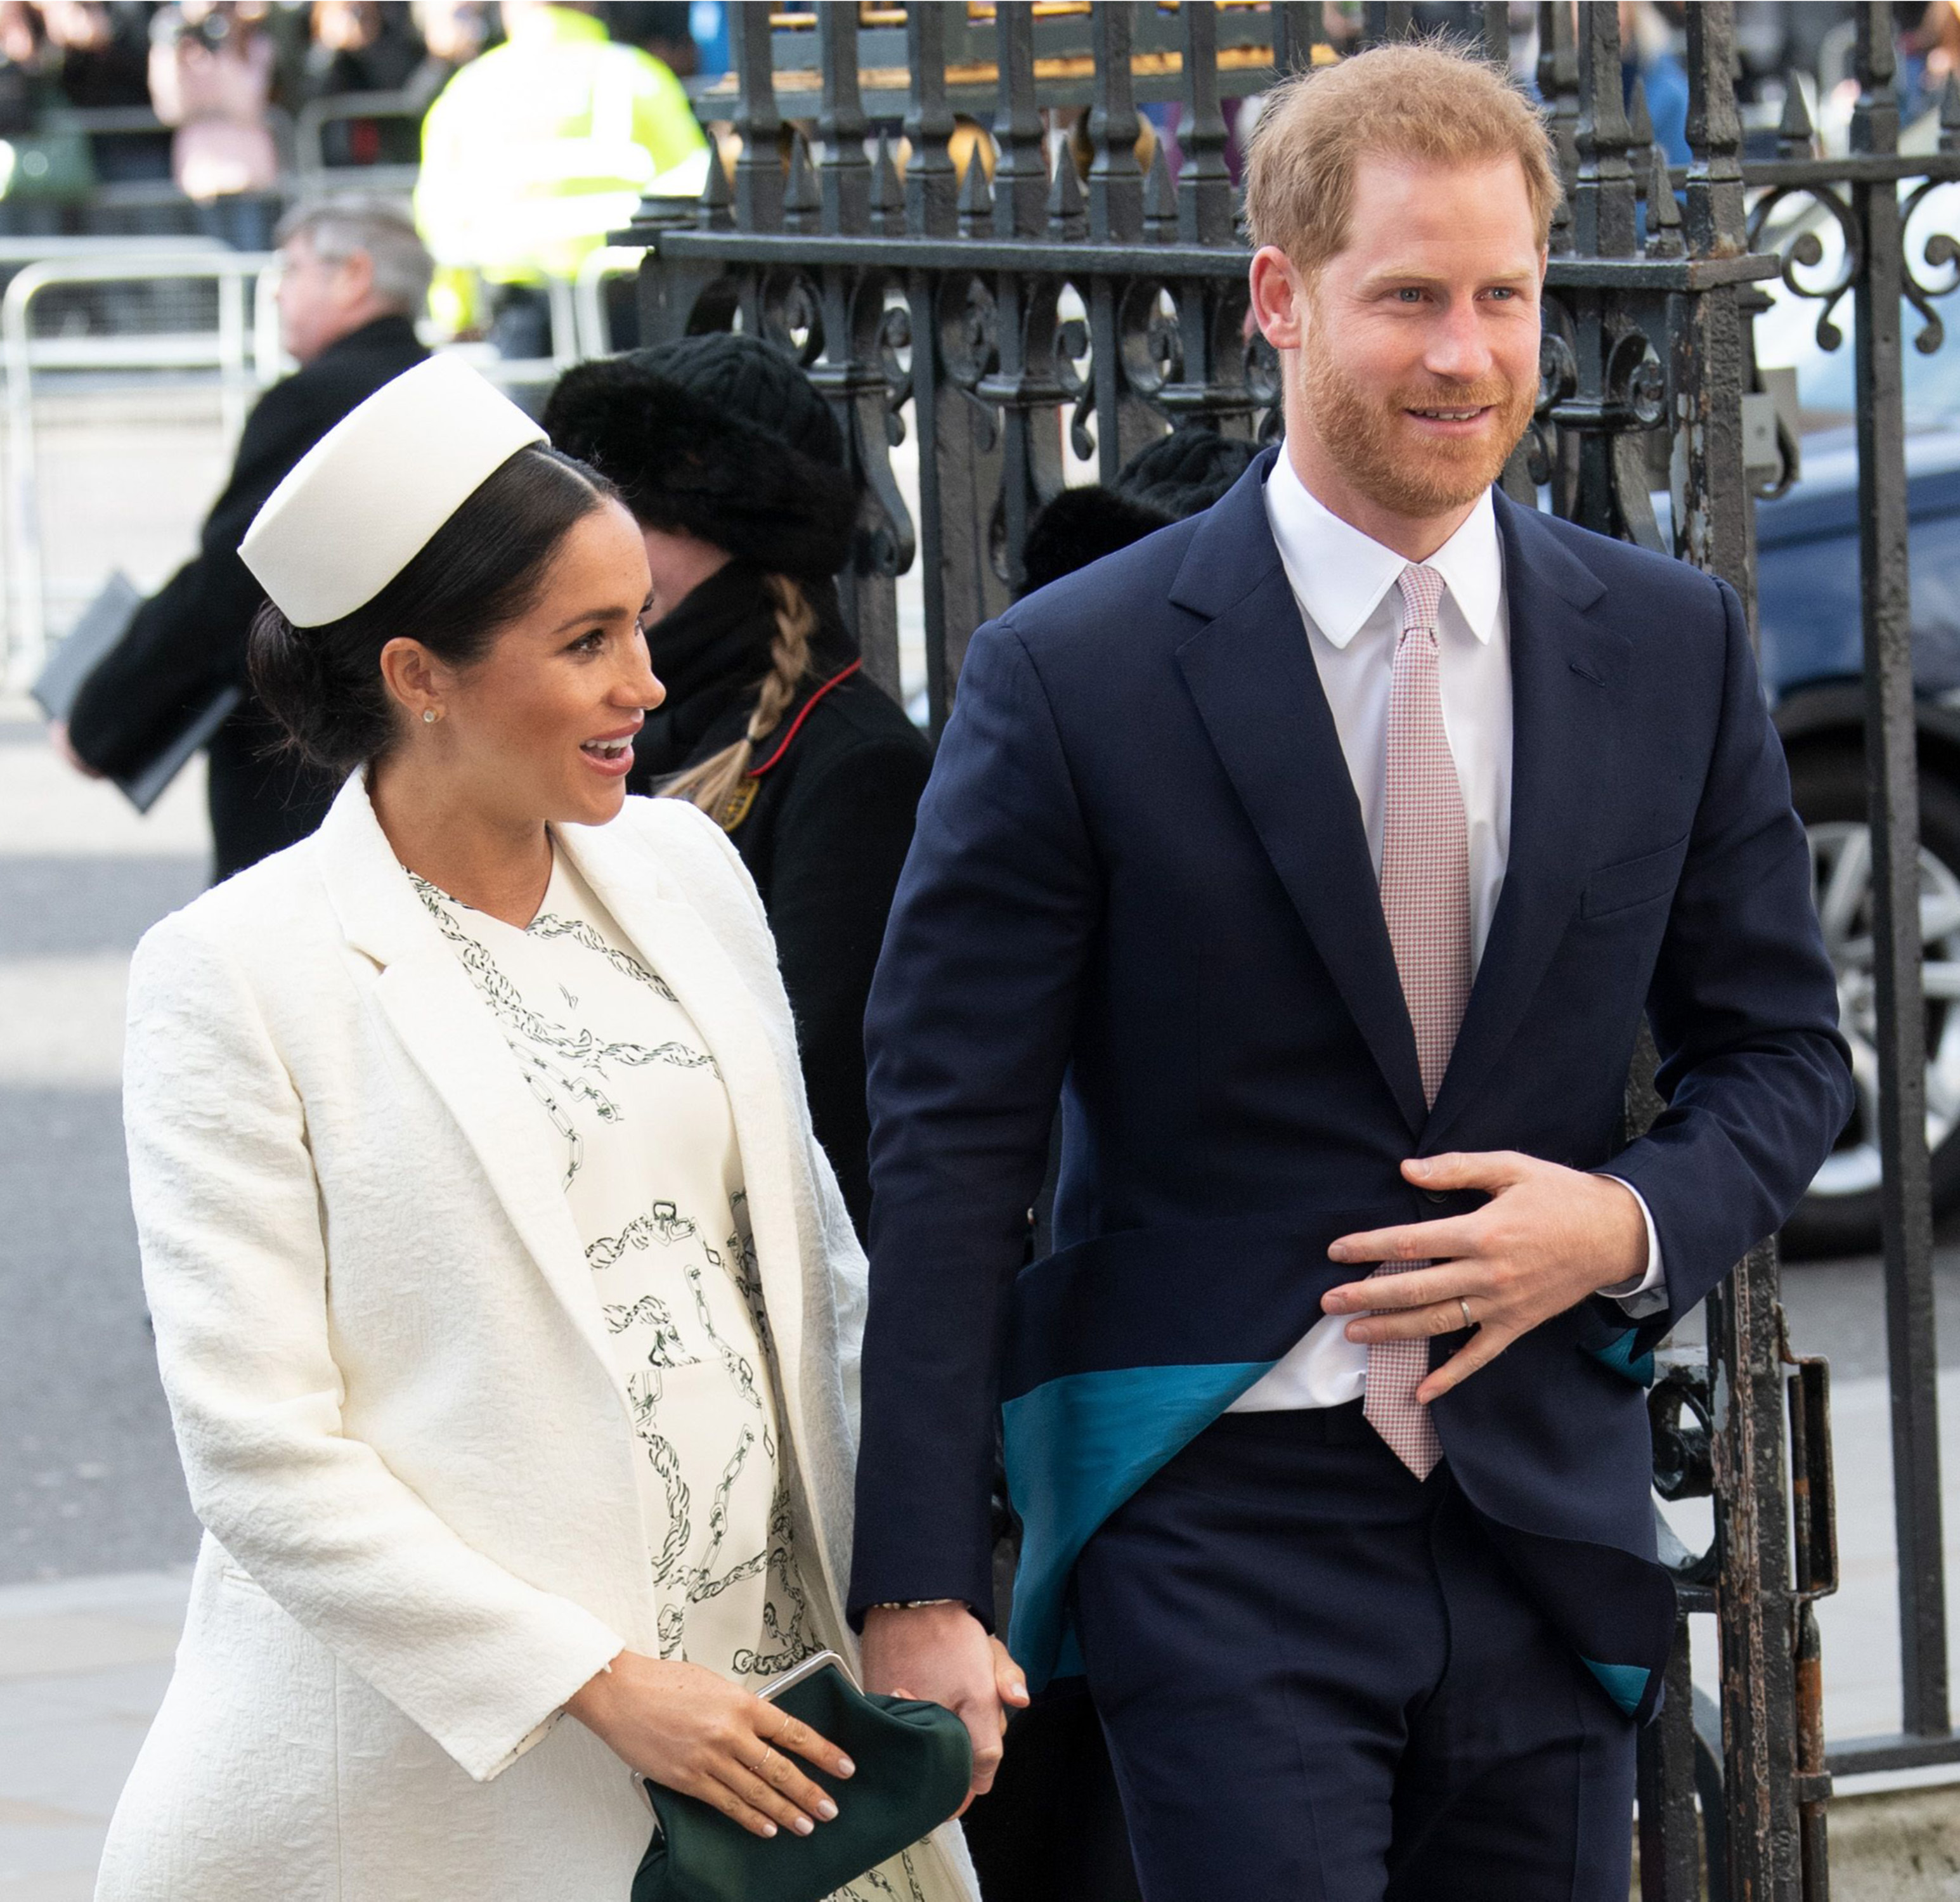 Harry And Meghan 'to Share First Photo Of Their Baby On